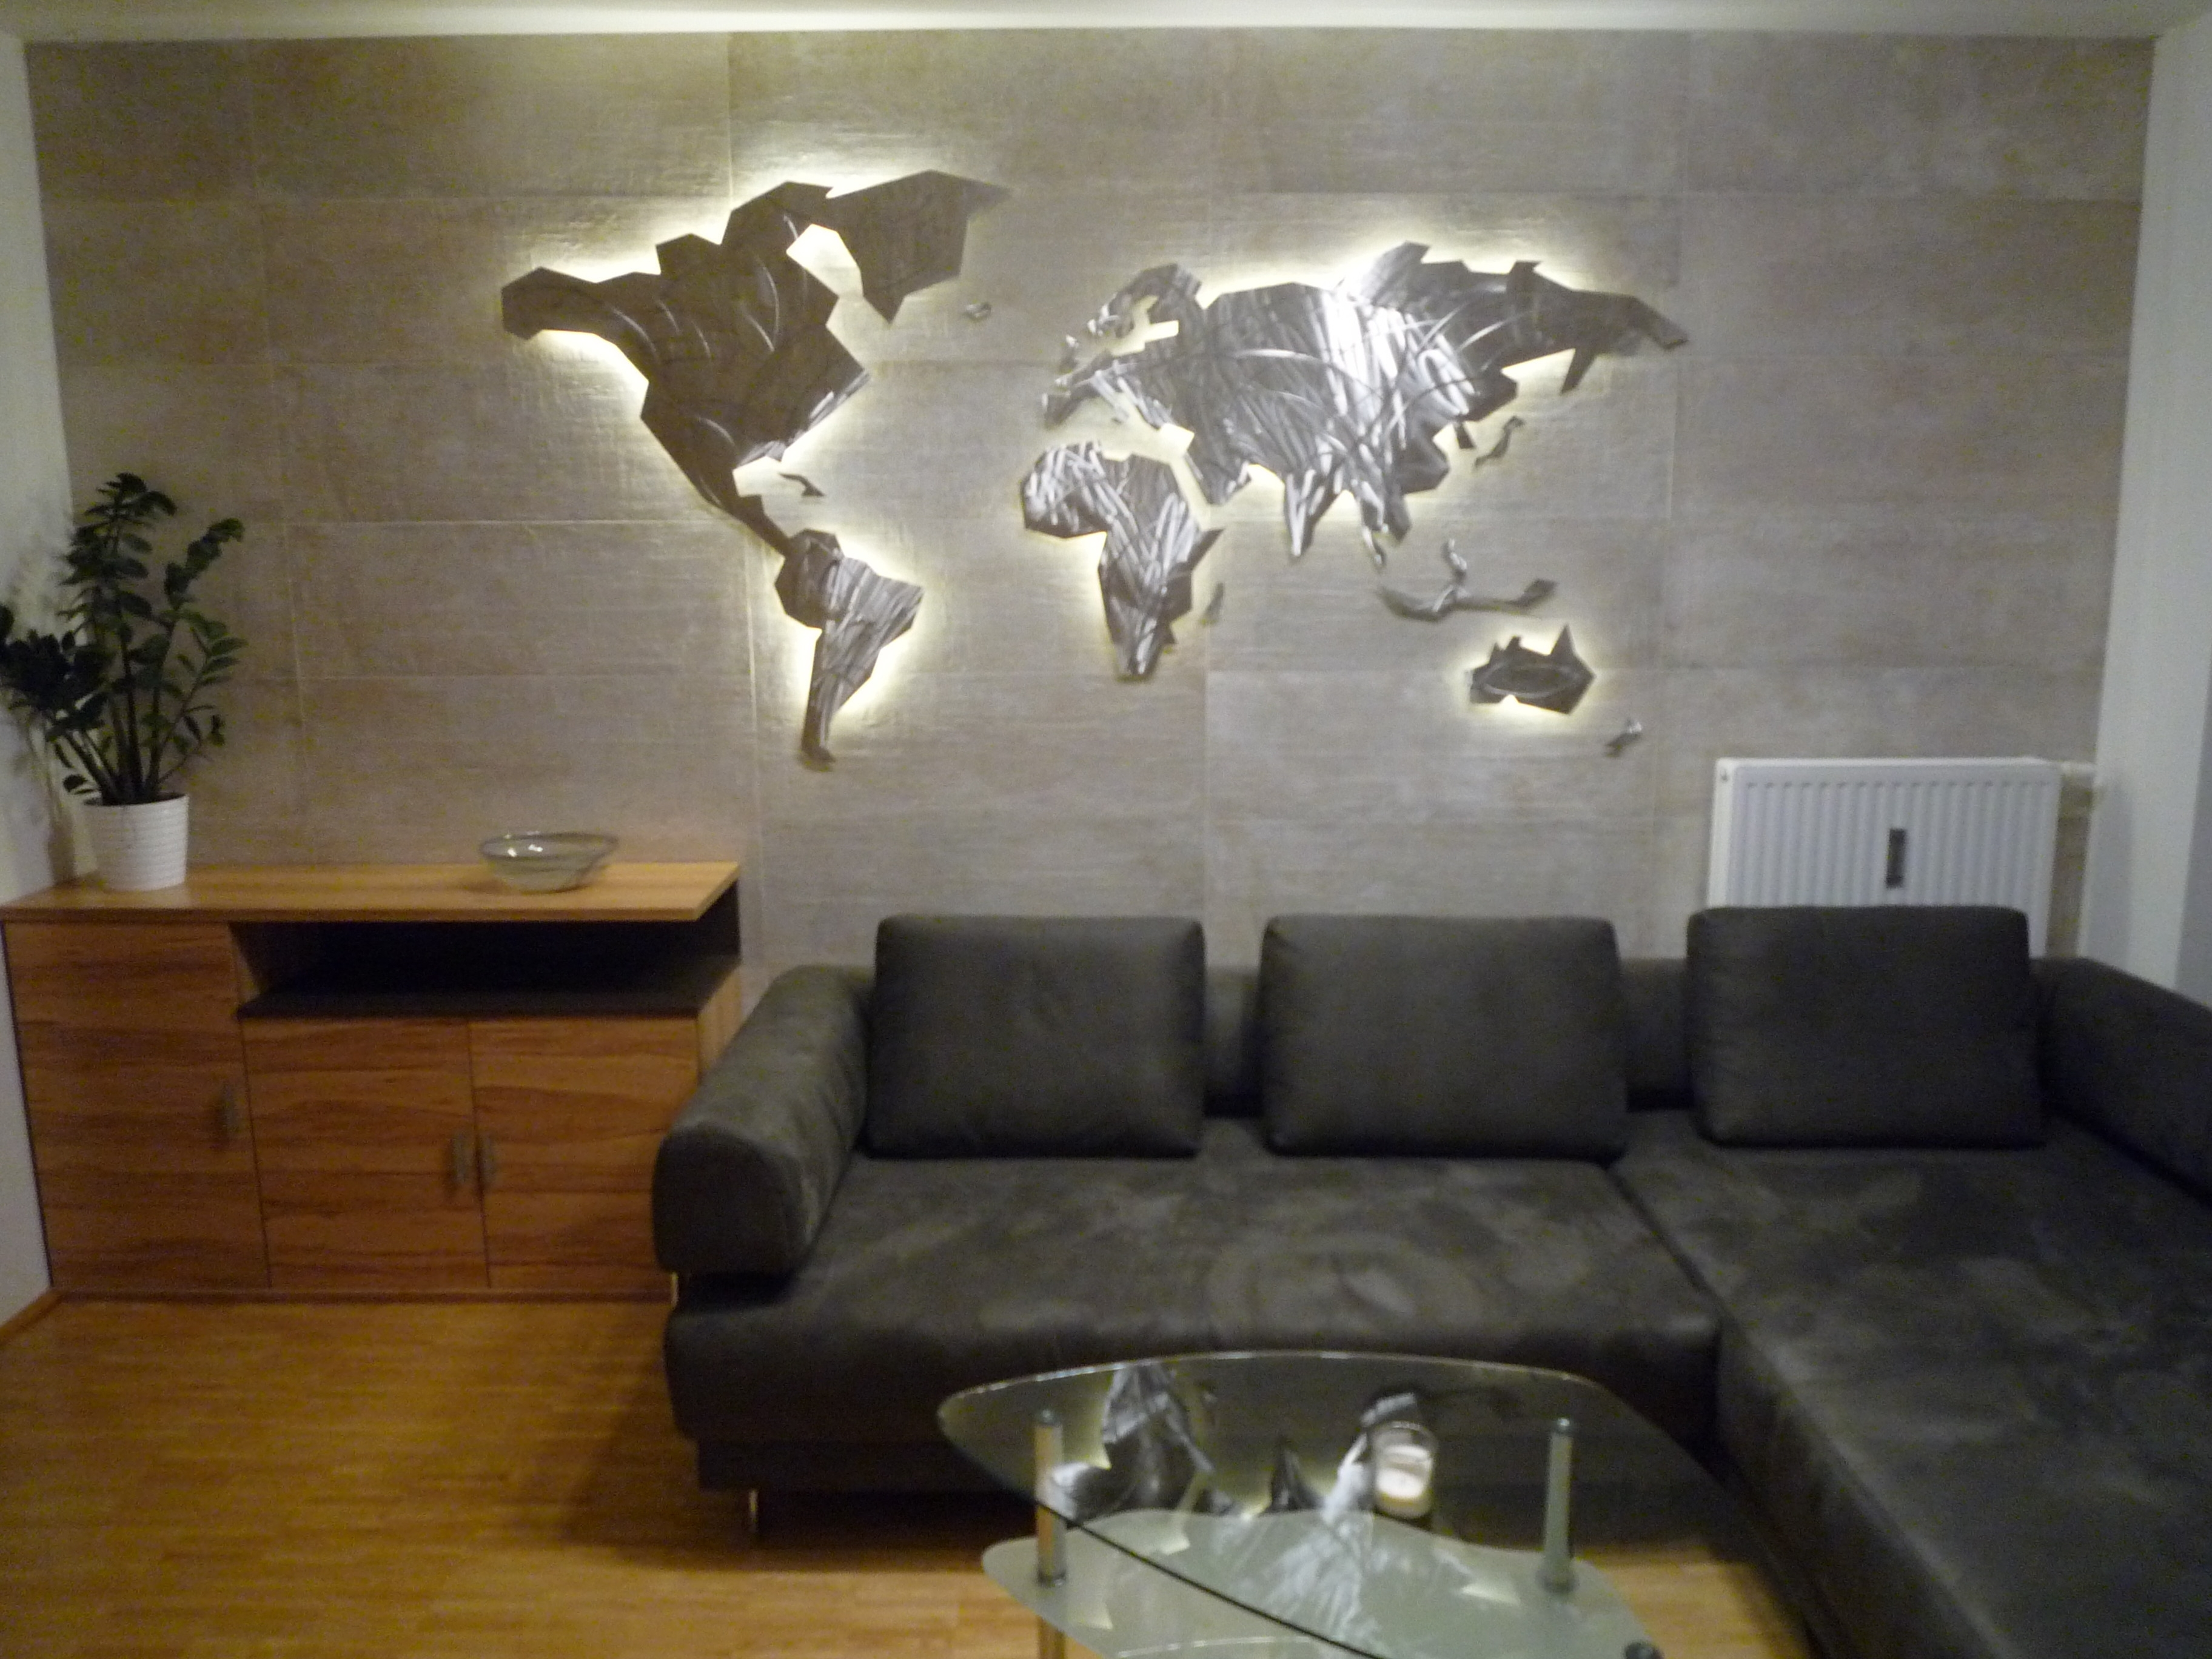 39 Inspirational World Map Wall Art Framed Design Ideas Of Led Wall Intended For Newest Wall Art Map Of World (View 14 of 20)